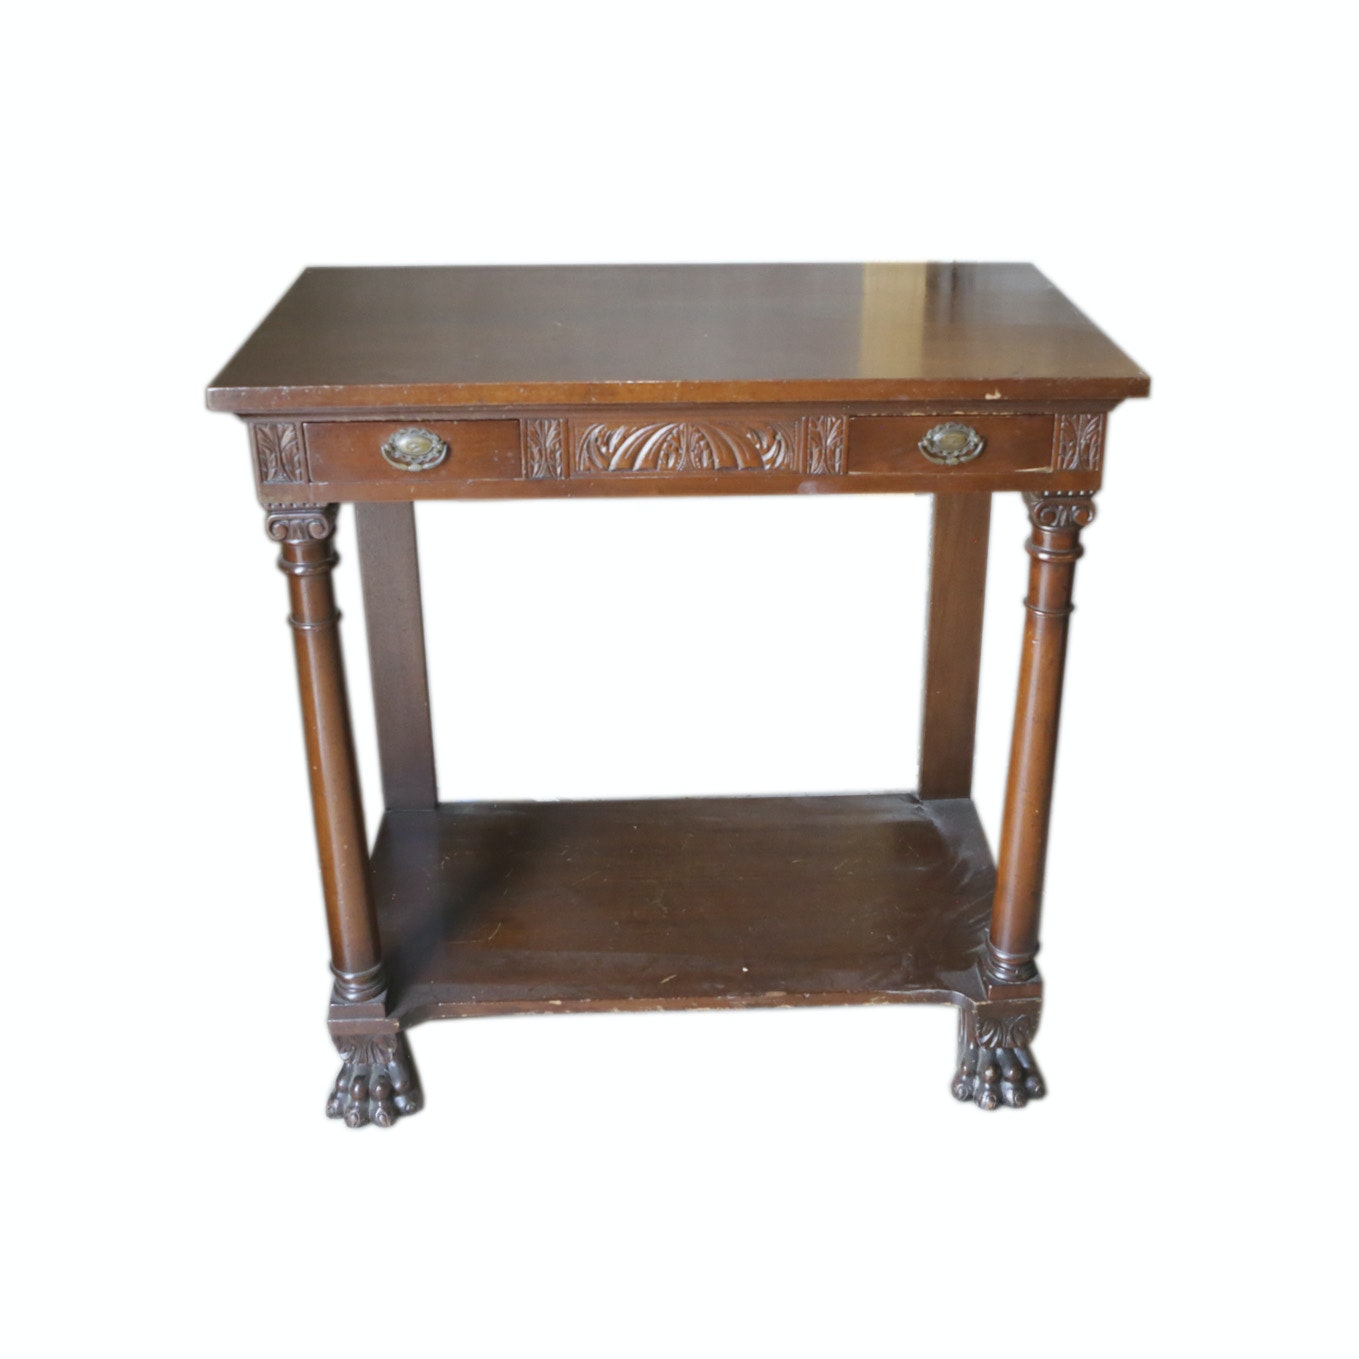 Antique Empire Style Serving Table